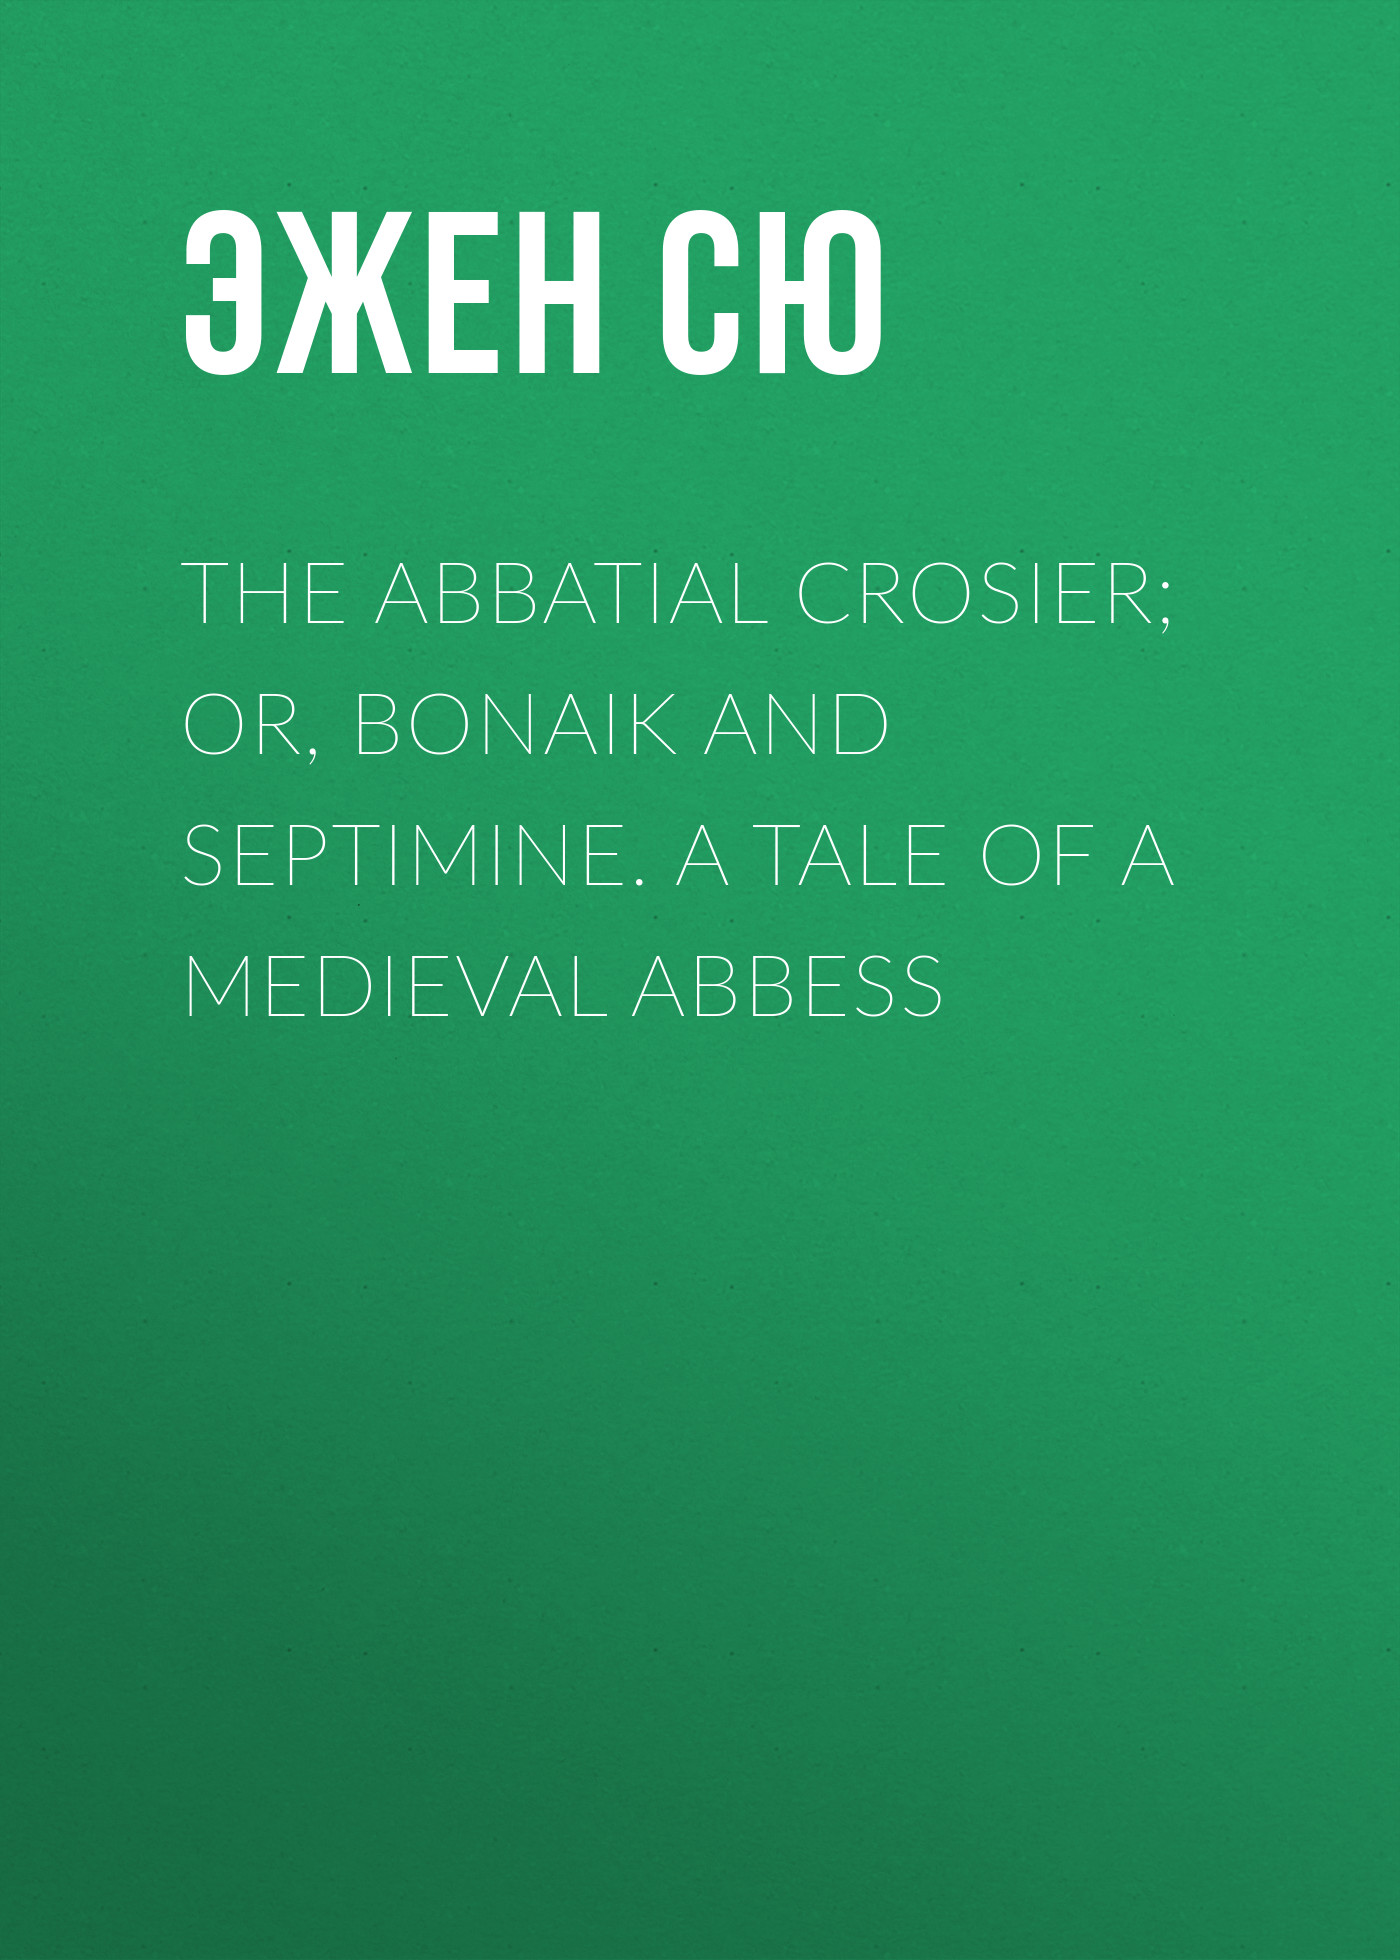 Эжен Сю The Abbatial Crosier; or, Bonaik and Septimine. A Tale of a Medieval Abbess эжен сю the gold sickle or hena the virgin of the isle of sen a tale of druid gaul